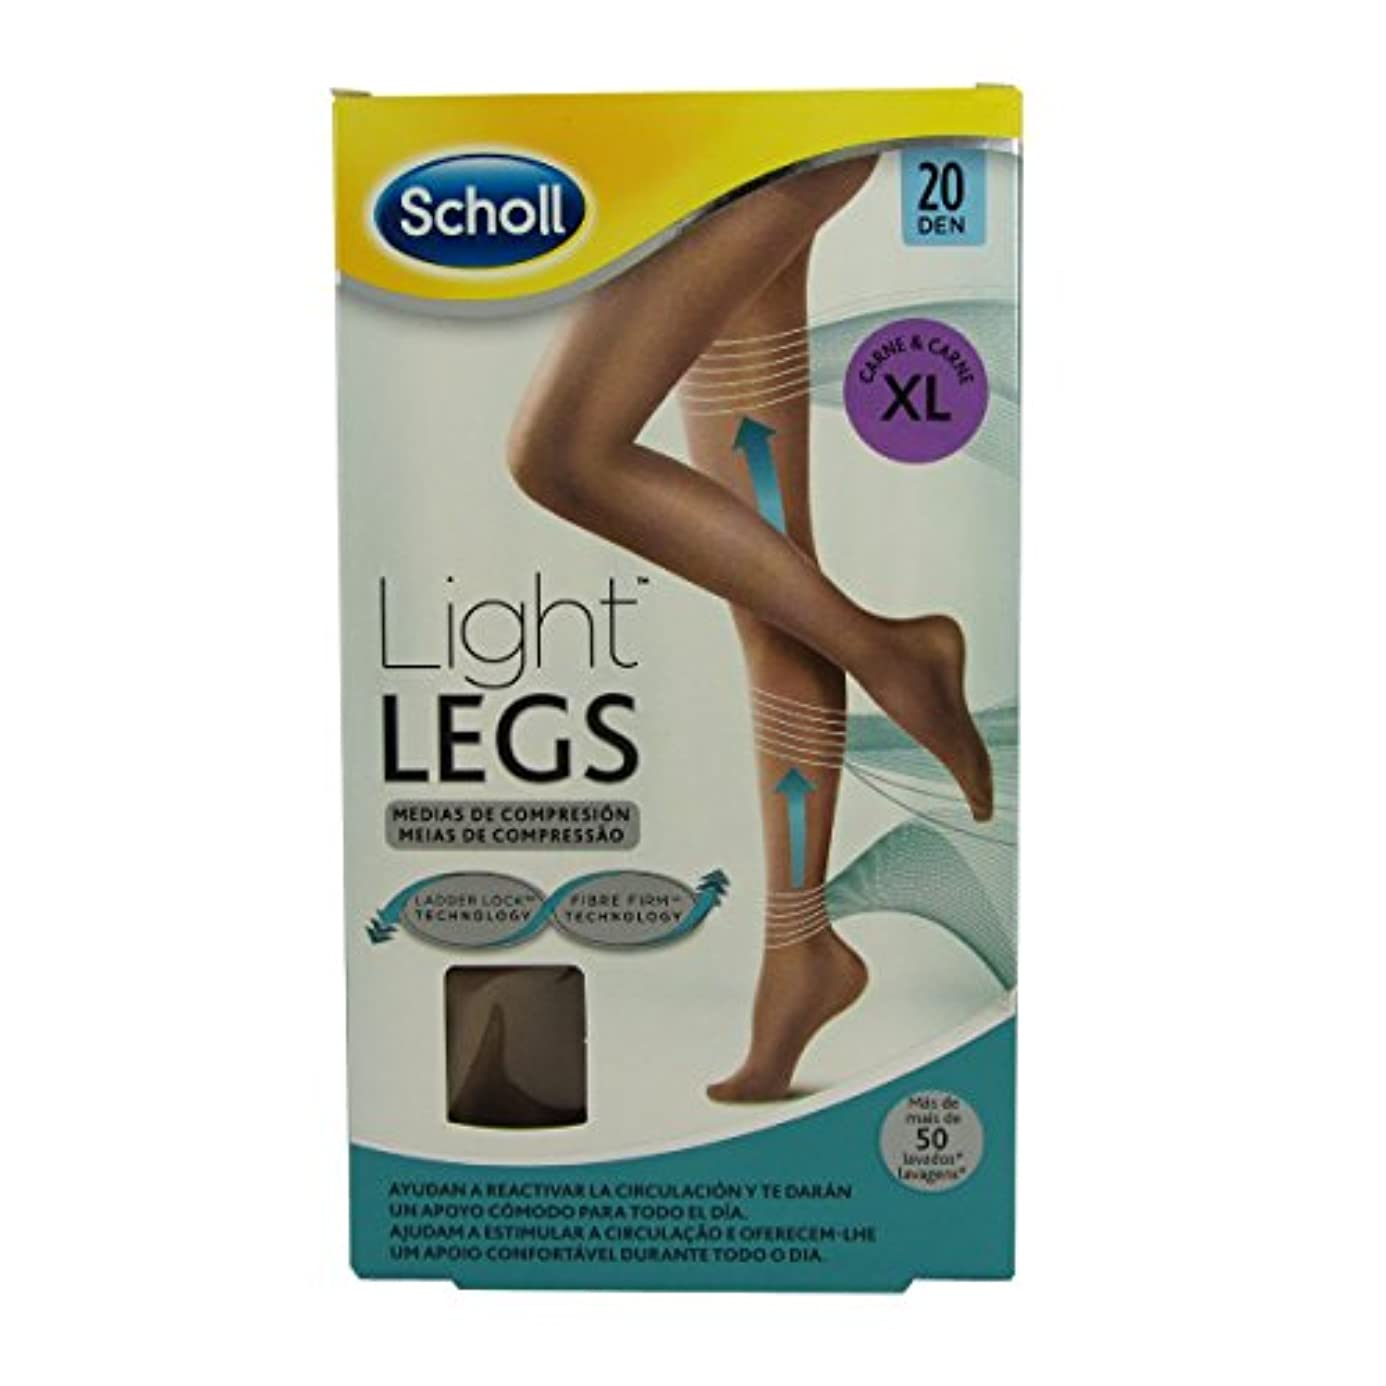 症状ギャンブルエステートScholl Light Legs Compression Tights 20den Skin Extra Large [並行輸入品]